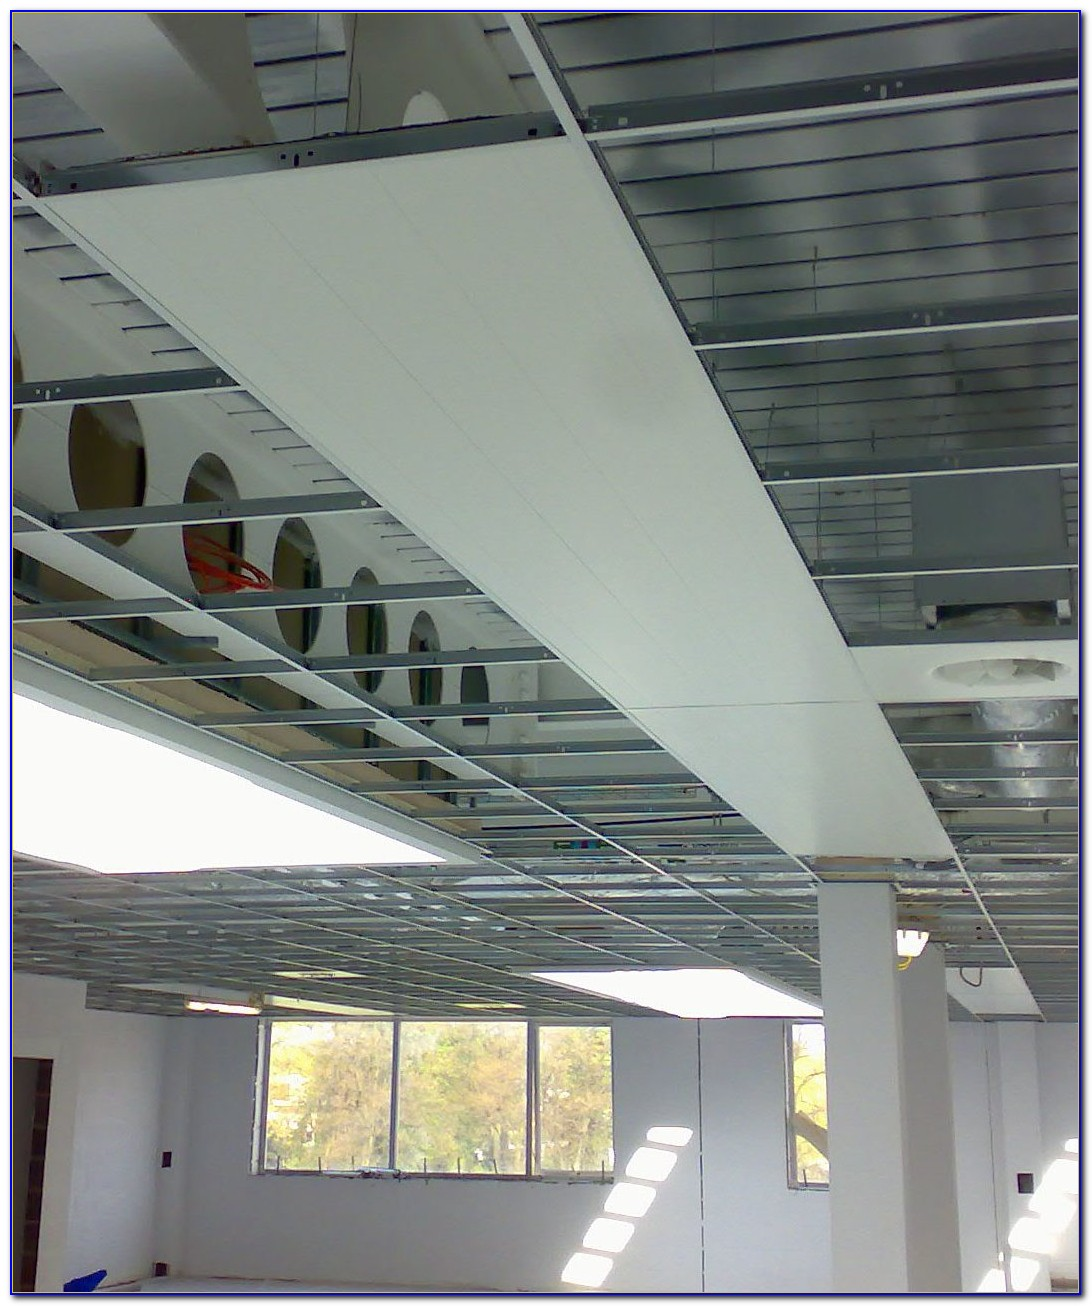 Electric Radiant Ceiling Heat System